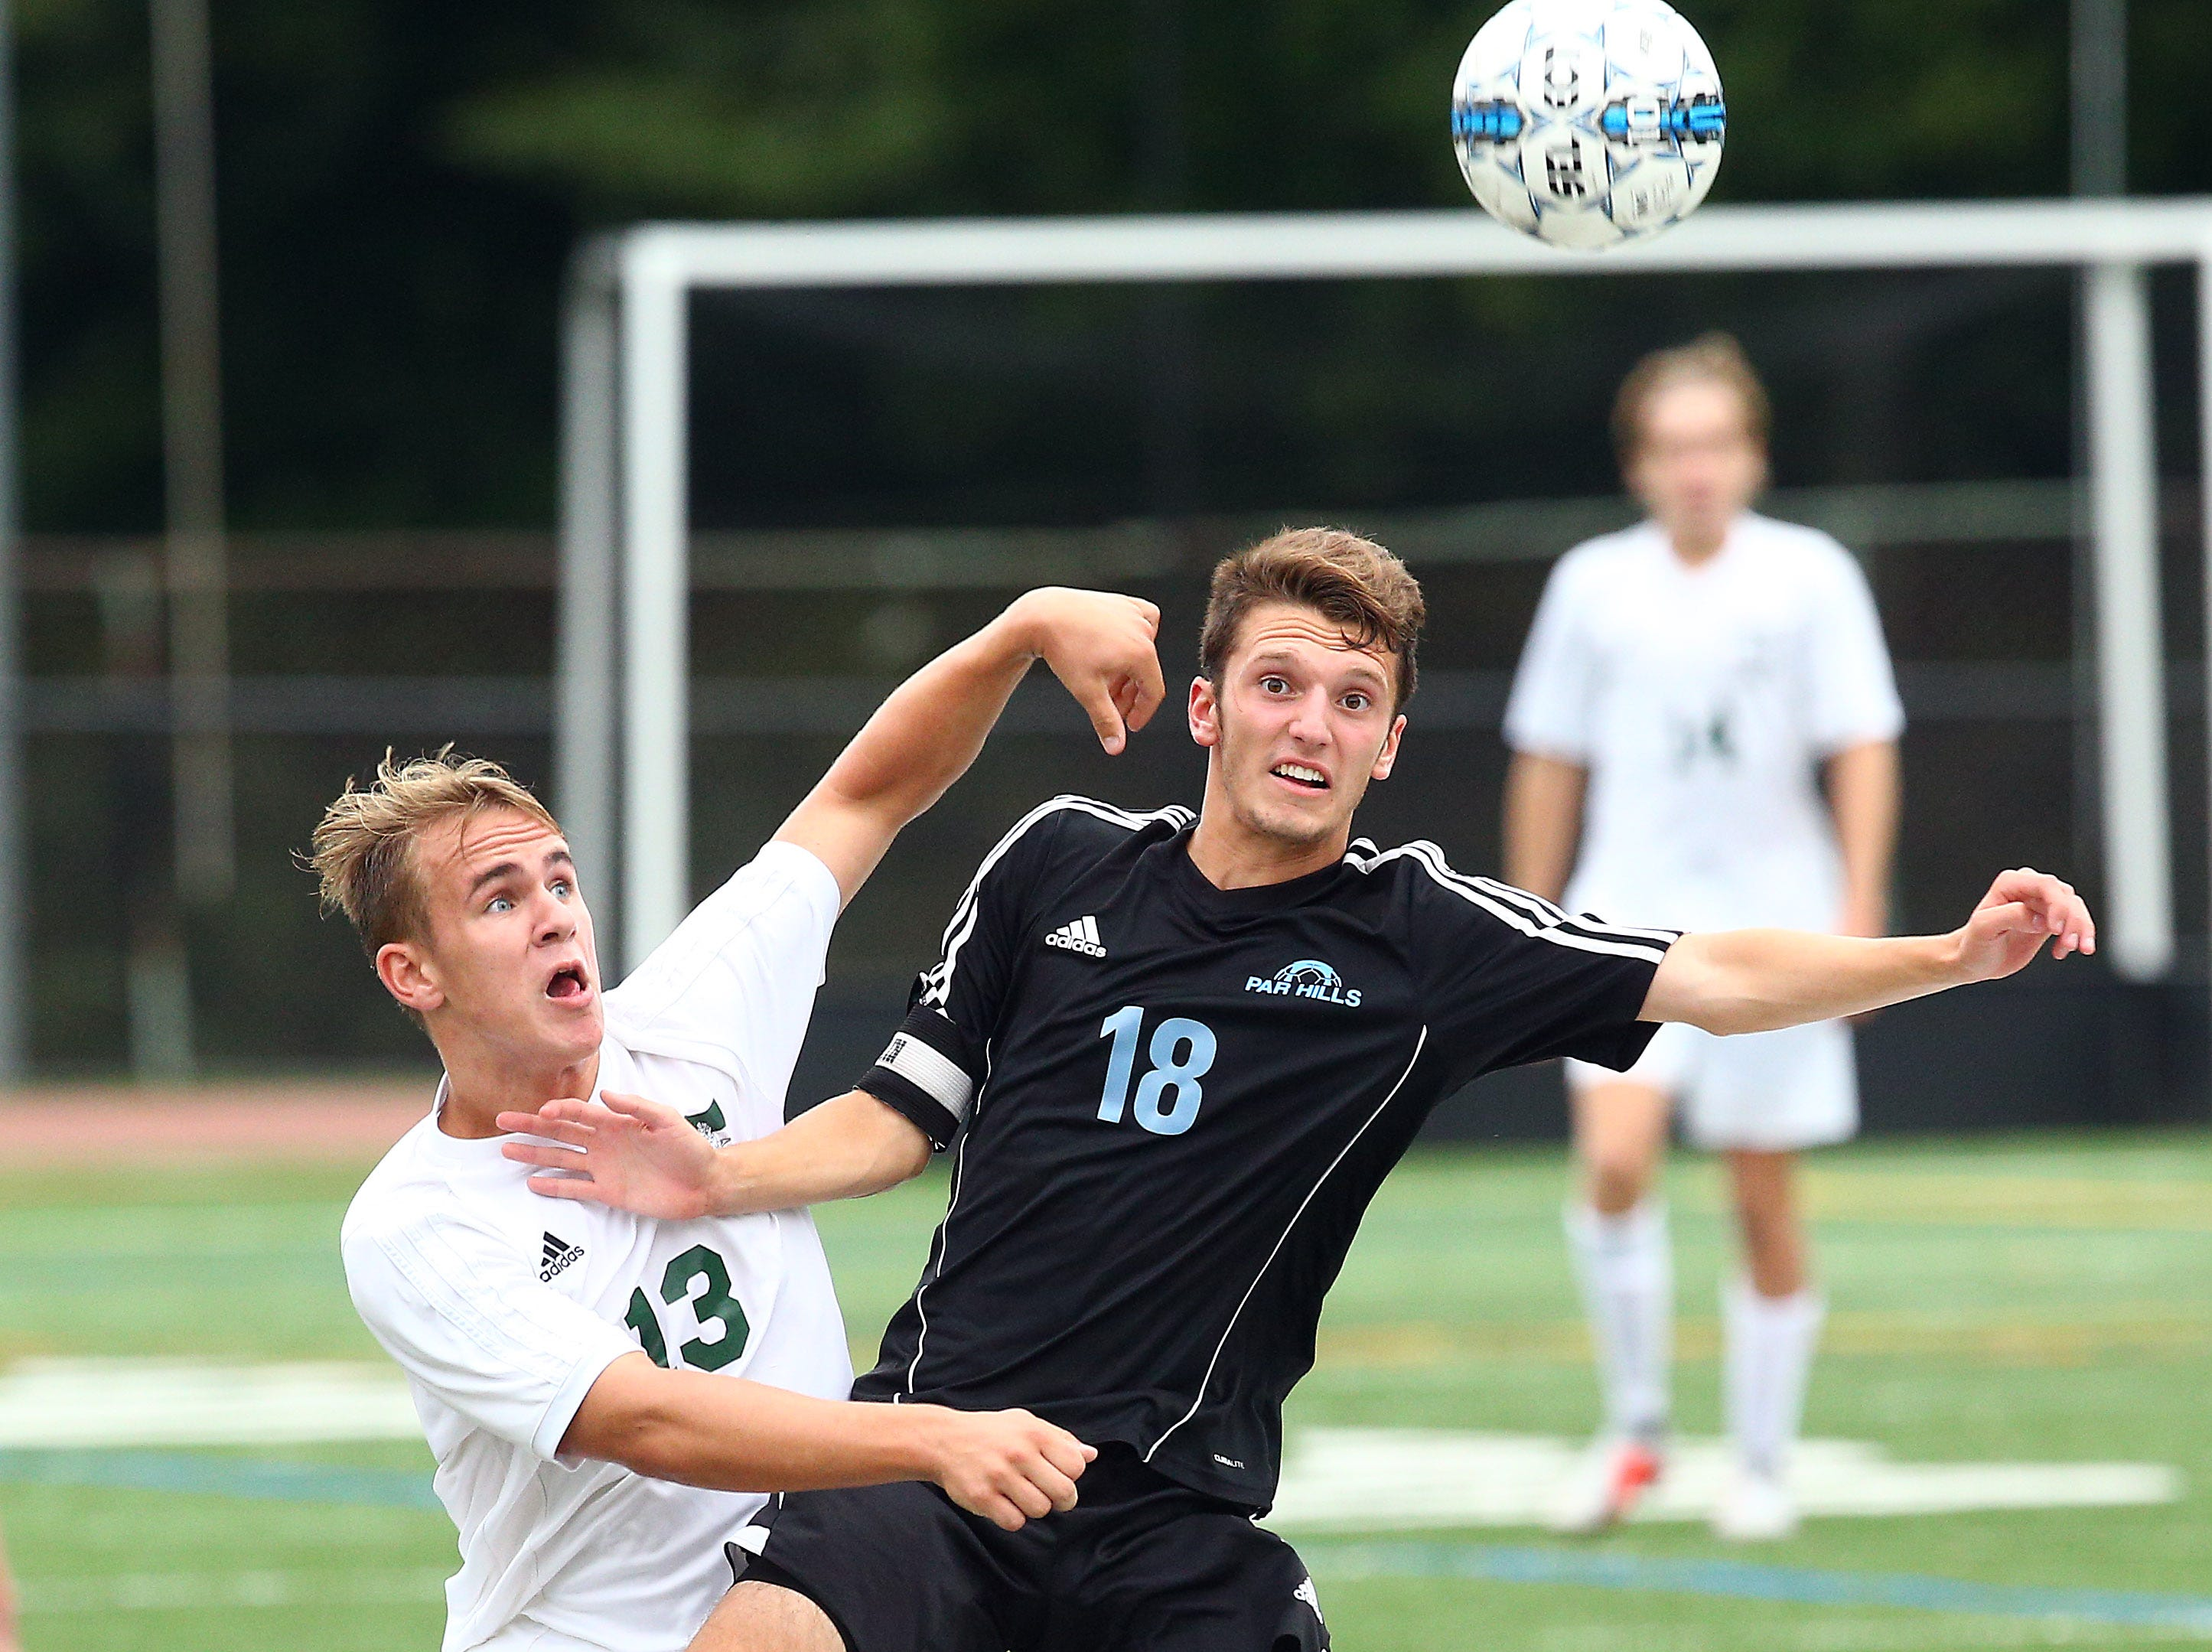 Morris Knolls Andrew Sceurman vs. Parsippany Hills Aidan Zitelli during their boys soccer match. September 27, 2018, Parsippany, NJ